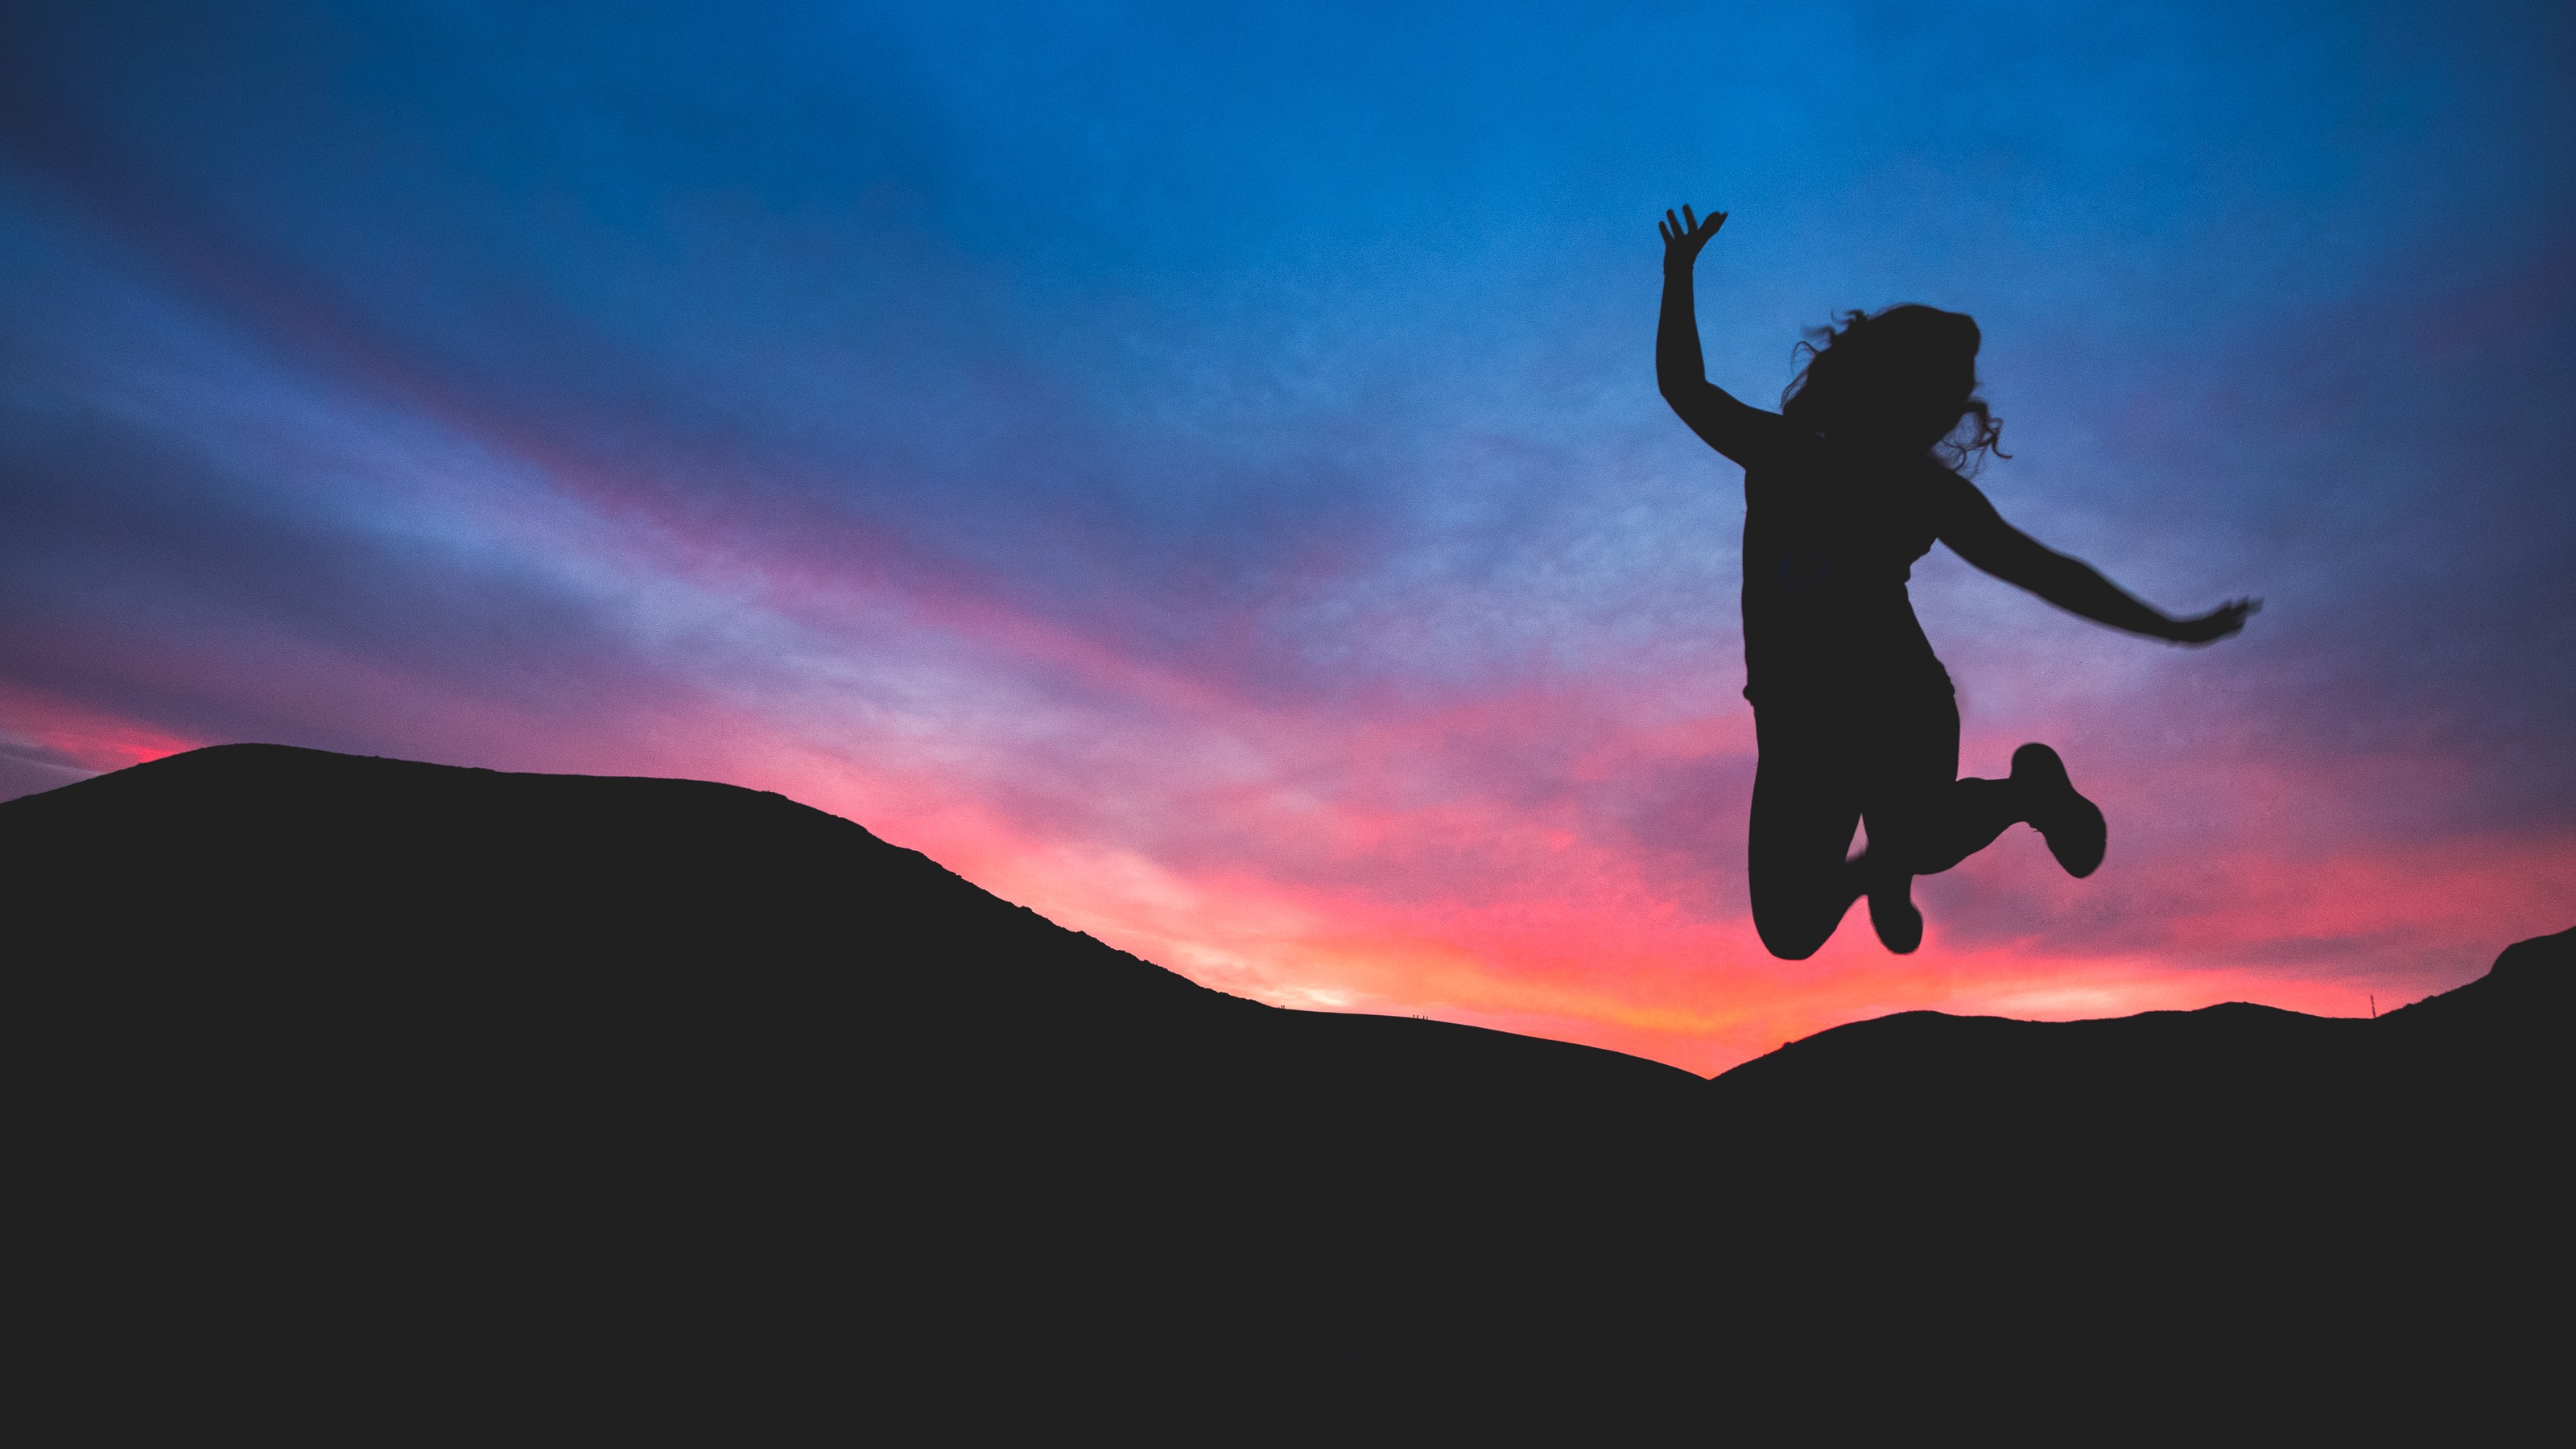 a person jumping high on a hill with a sunset in the background